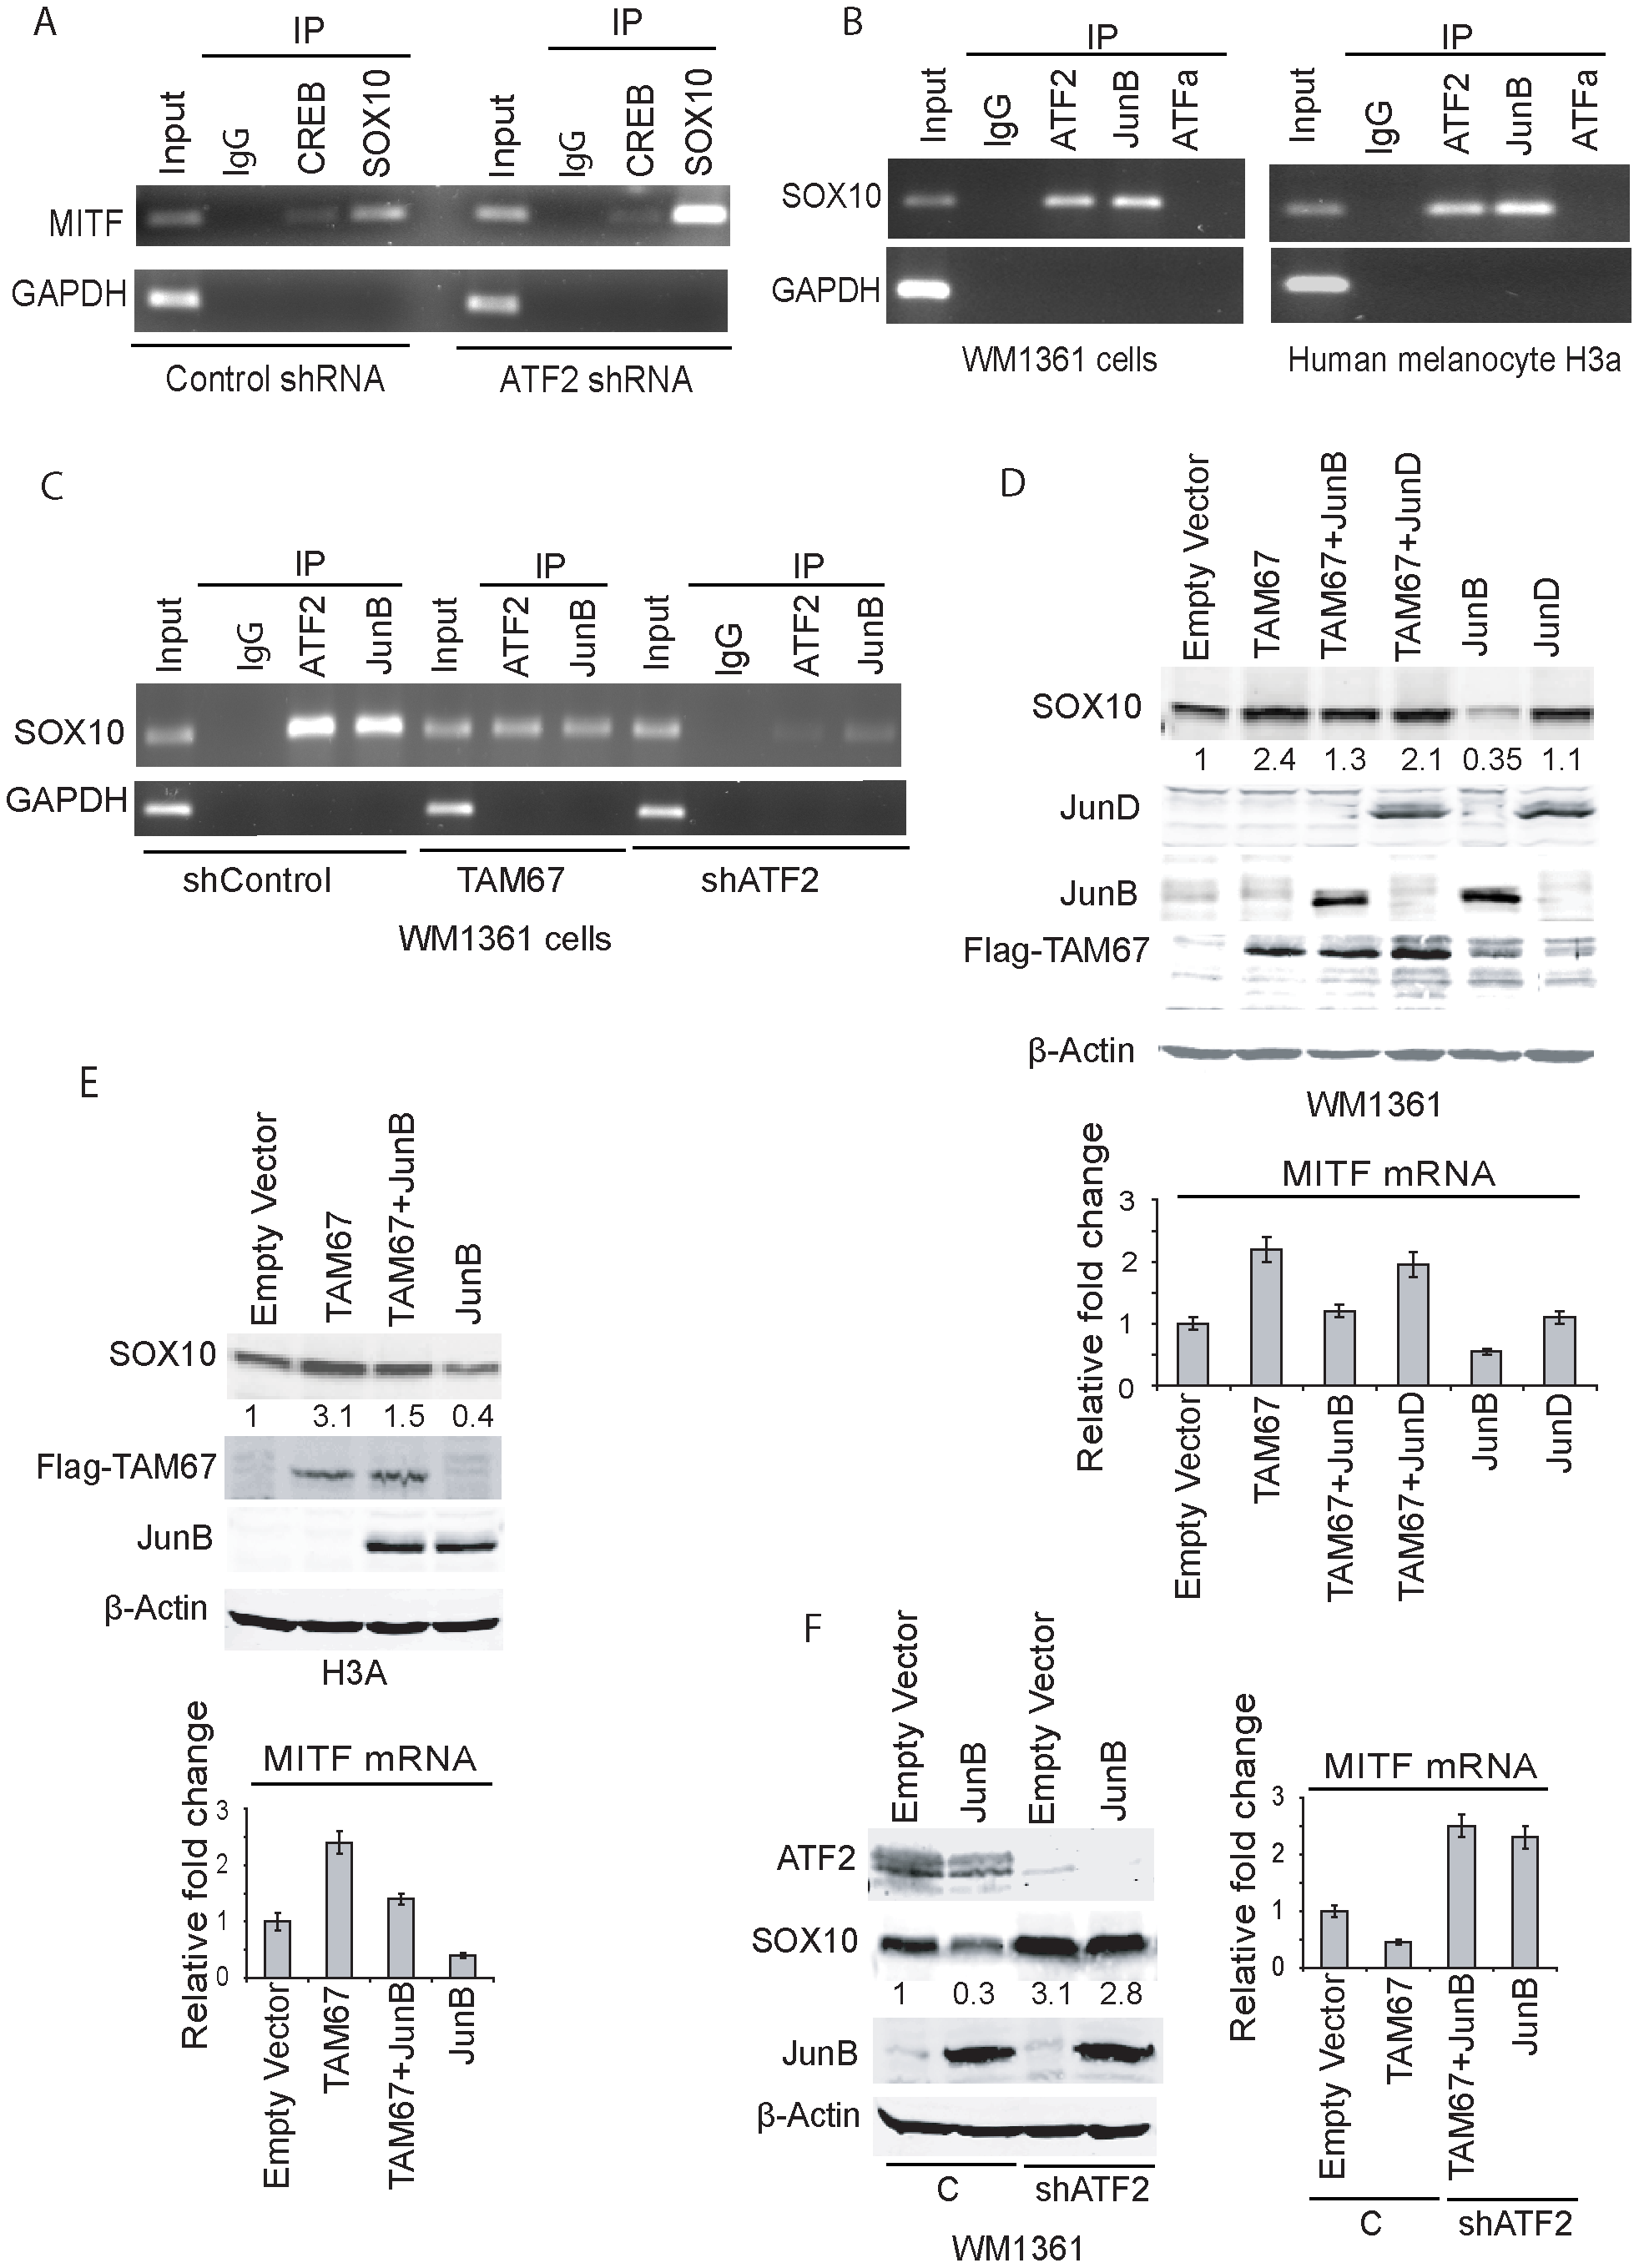 ATF2 and JunB negatively regulate SOX10 transcription, with concomitant effect on MITF.